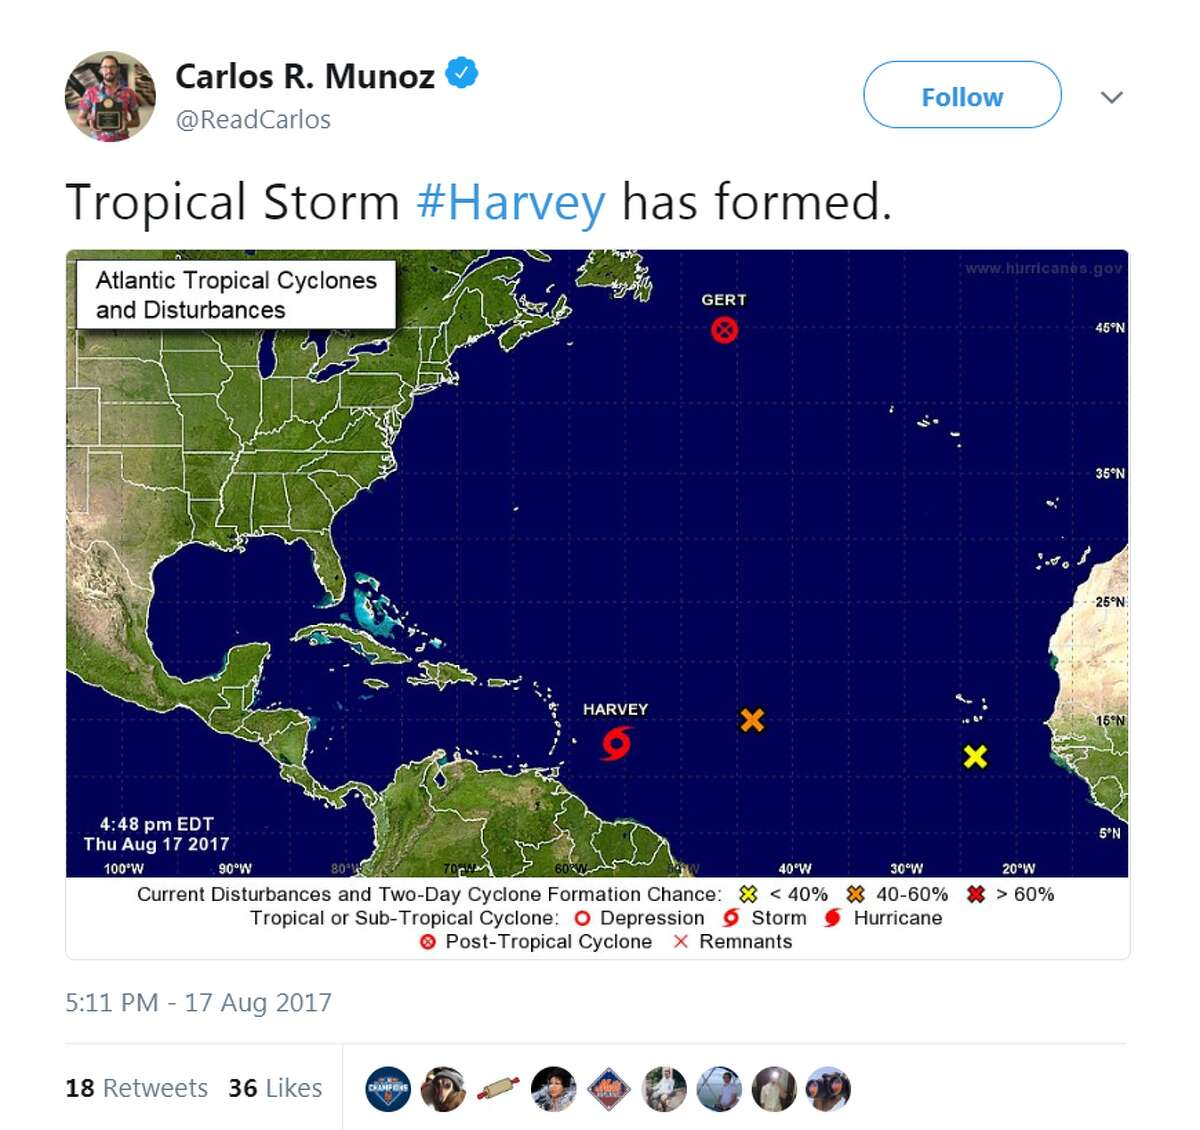 See how Hurricane Harvey was cataloged from start to end through the lens of social media Carlos R. Munoz, August 17